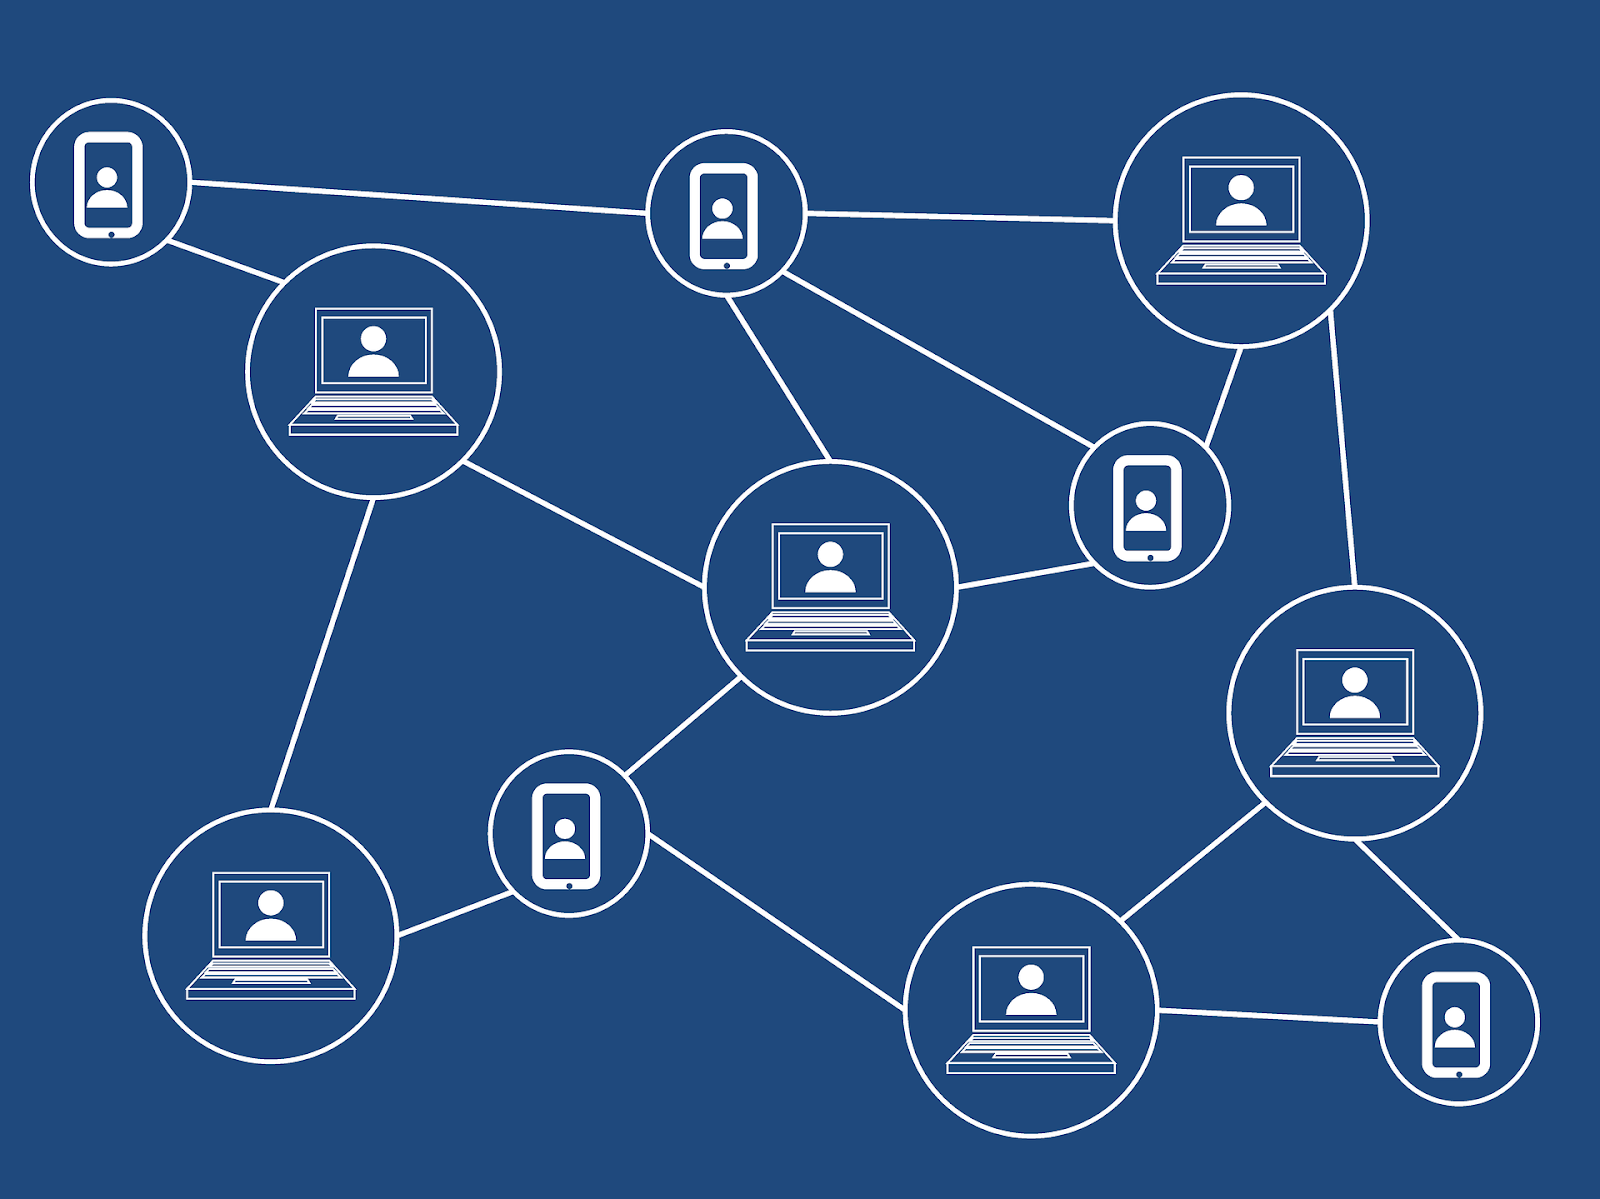 Negotiations with Blockchain and IoT